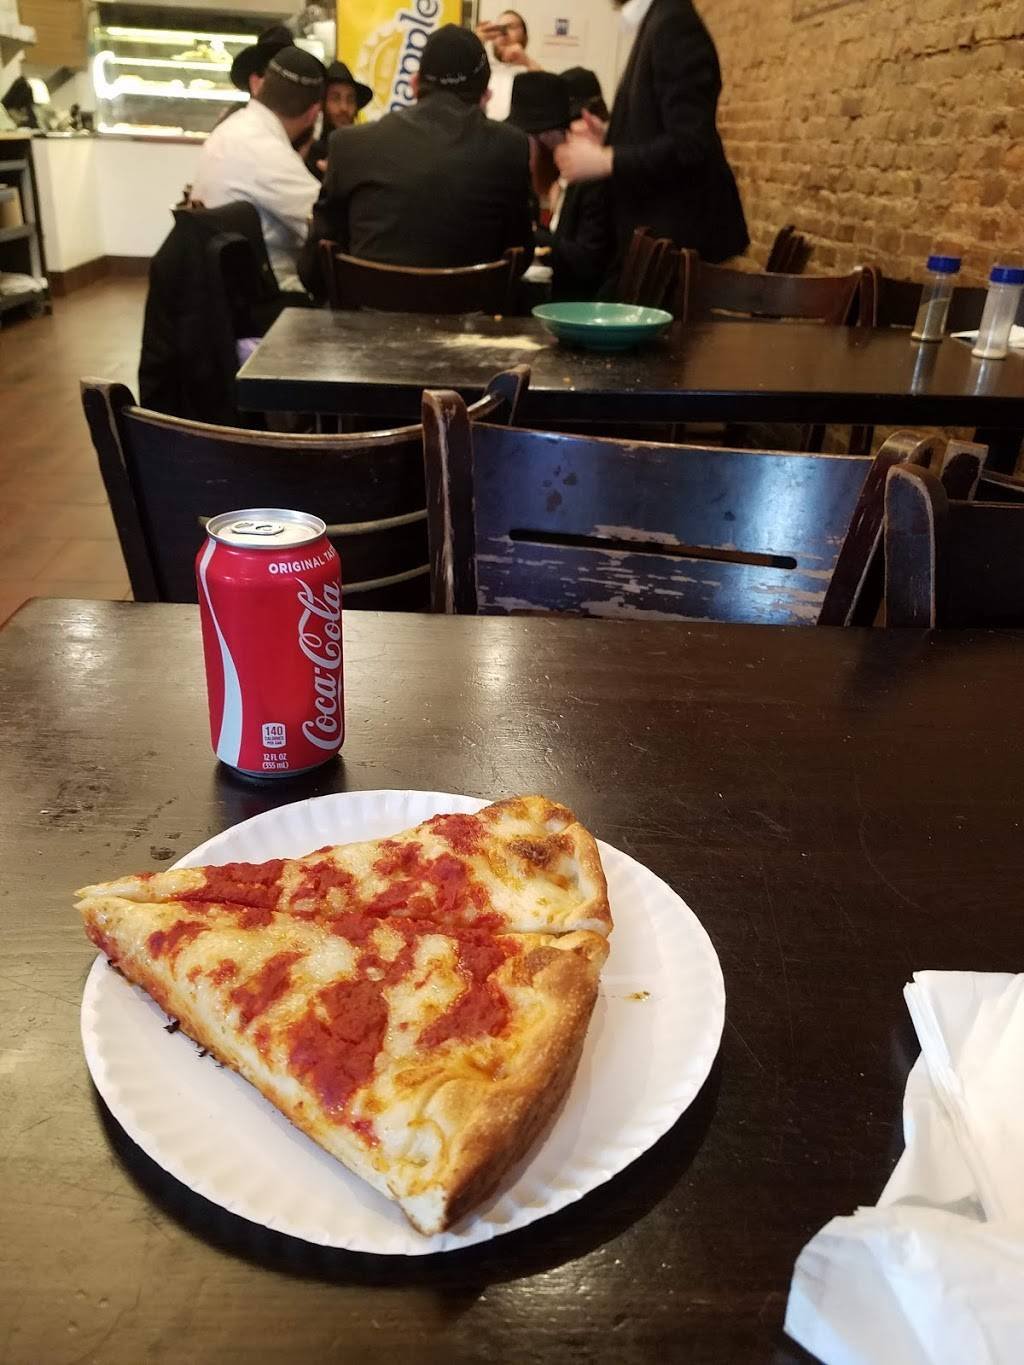 Bennys Brick Oven Pizza   meal takeaway   419 Kingston Ave, Brooklyn, NY 11225, USA   7184844817 OR +1 718-484-4817